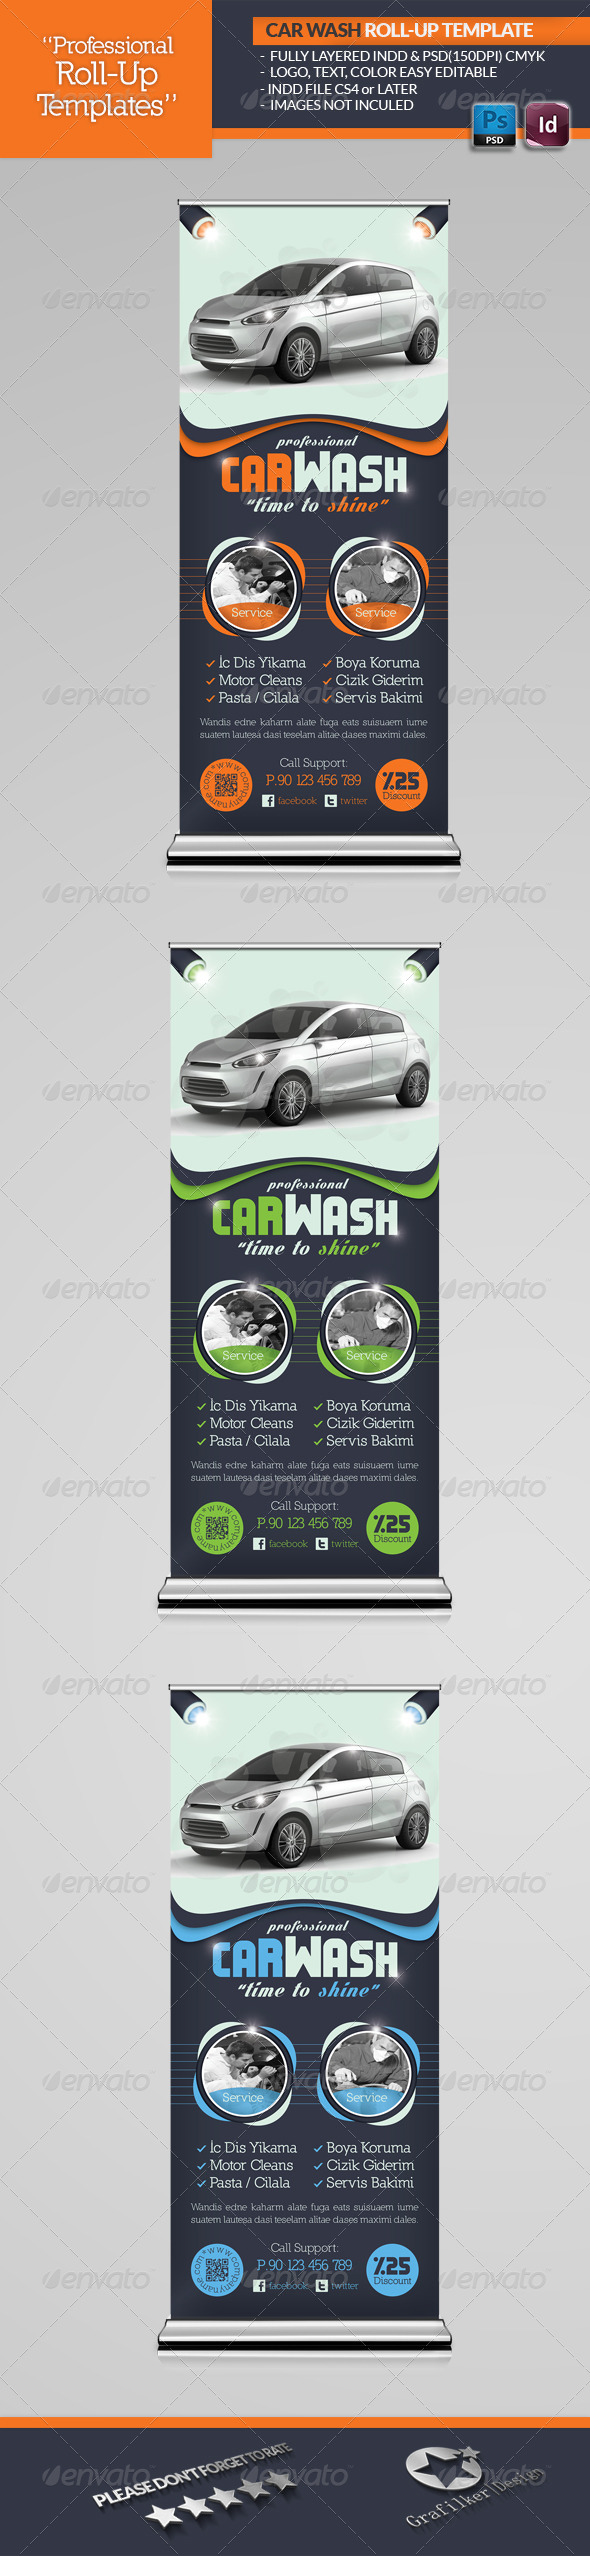 Car Wash Roll-Up Template - Signage Print Templates